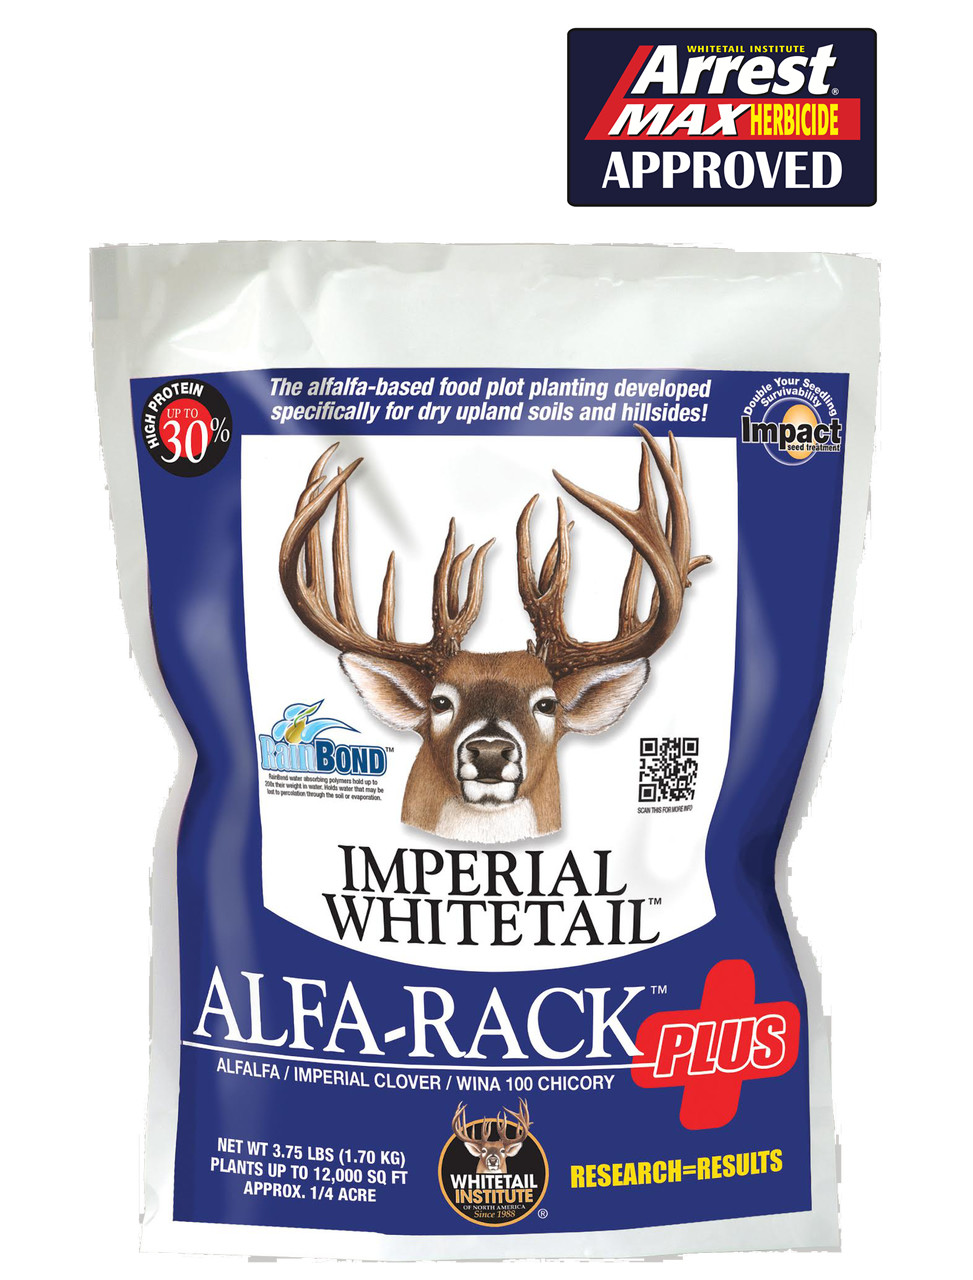 Whitetail Institute Afla-Rack Plus